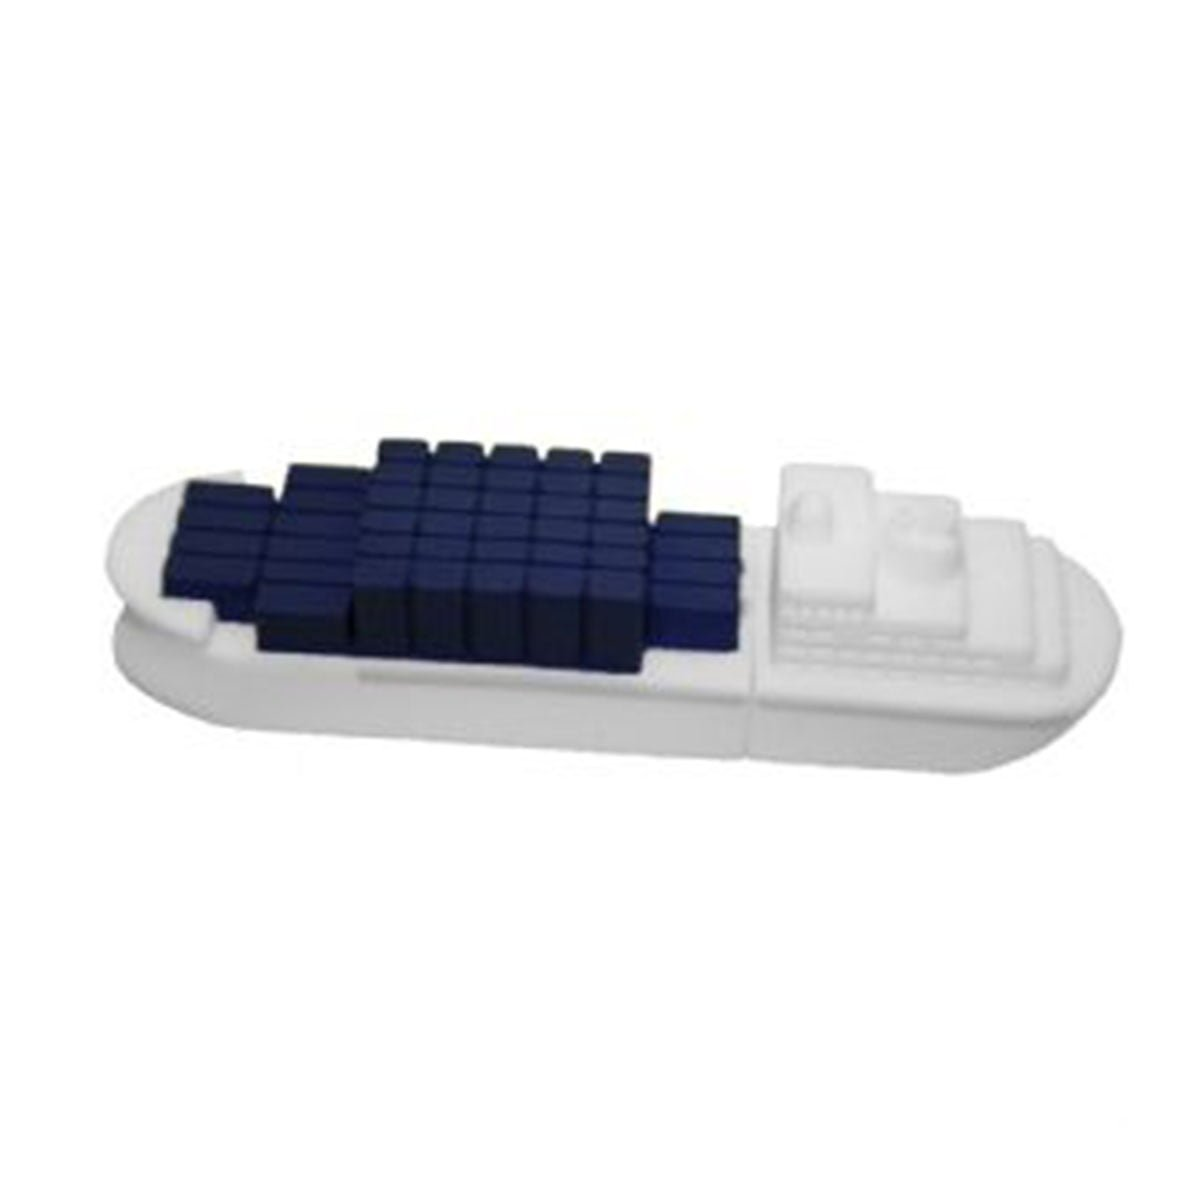 Container Ship PVC Flash Drive-You can change up to 2 of the base PVC colours and print your logo in 1-2 colours in 1 position.